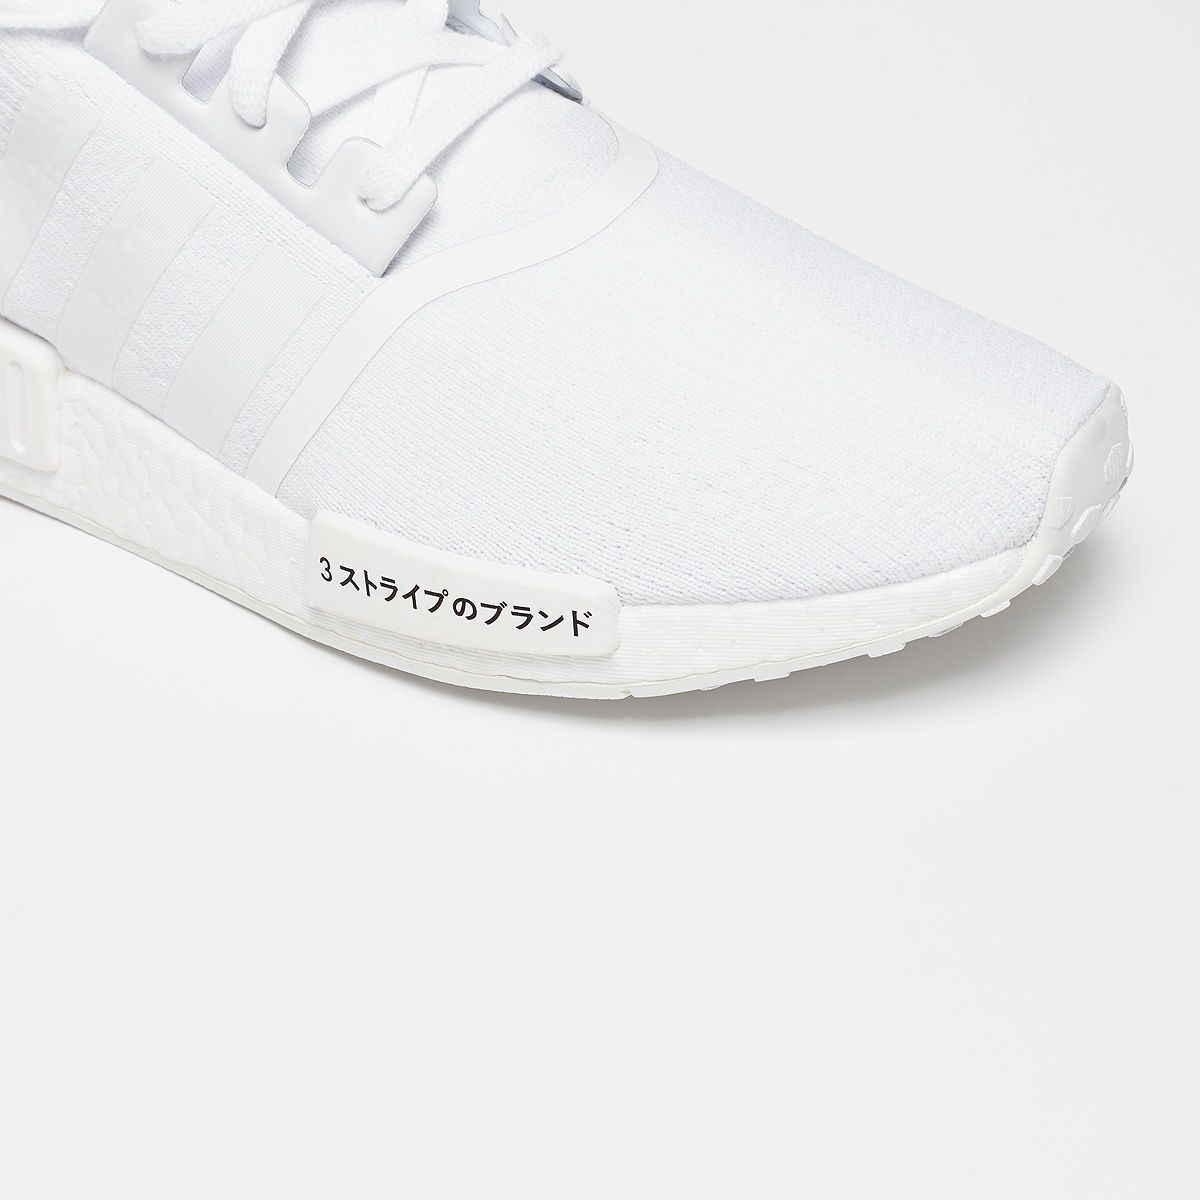 competitive price 52e47 42174 NMD R1 PK Japan All White - ENStest